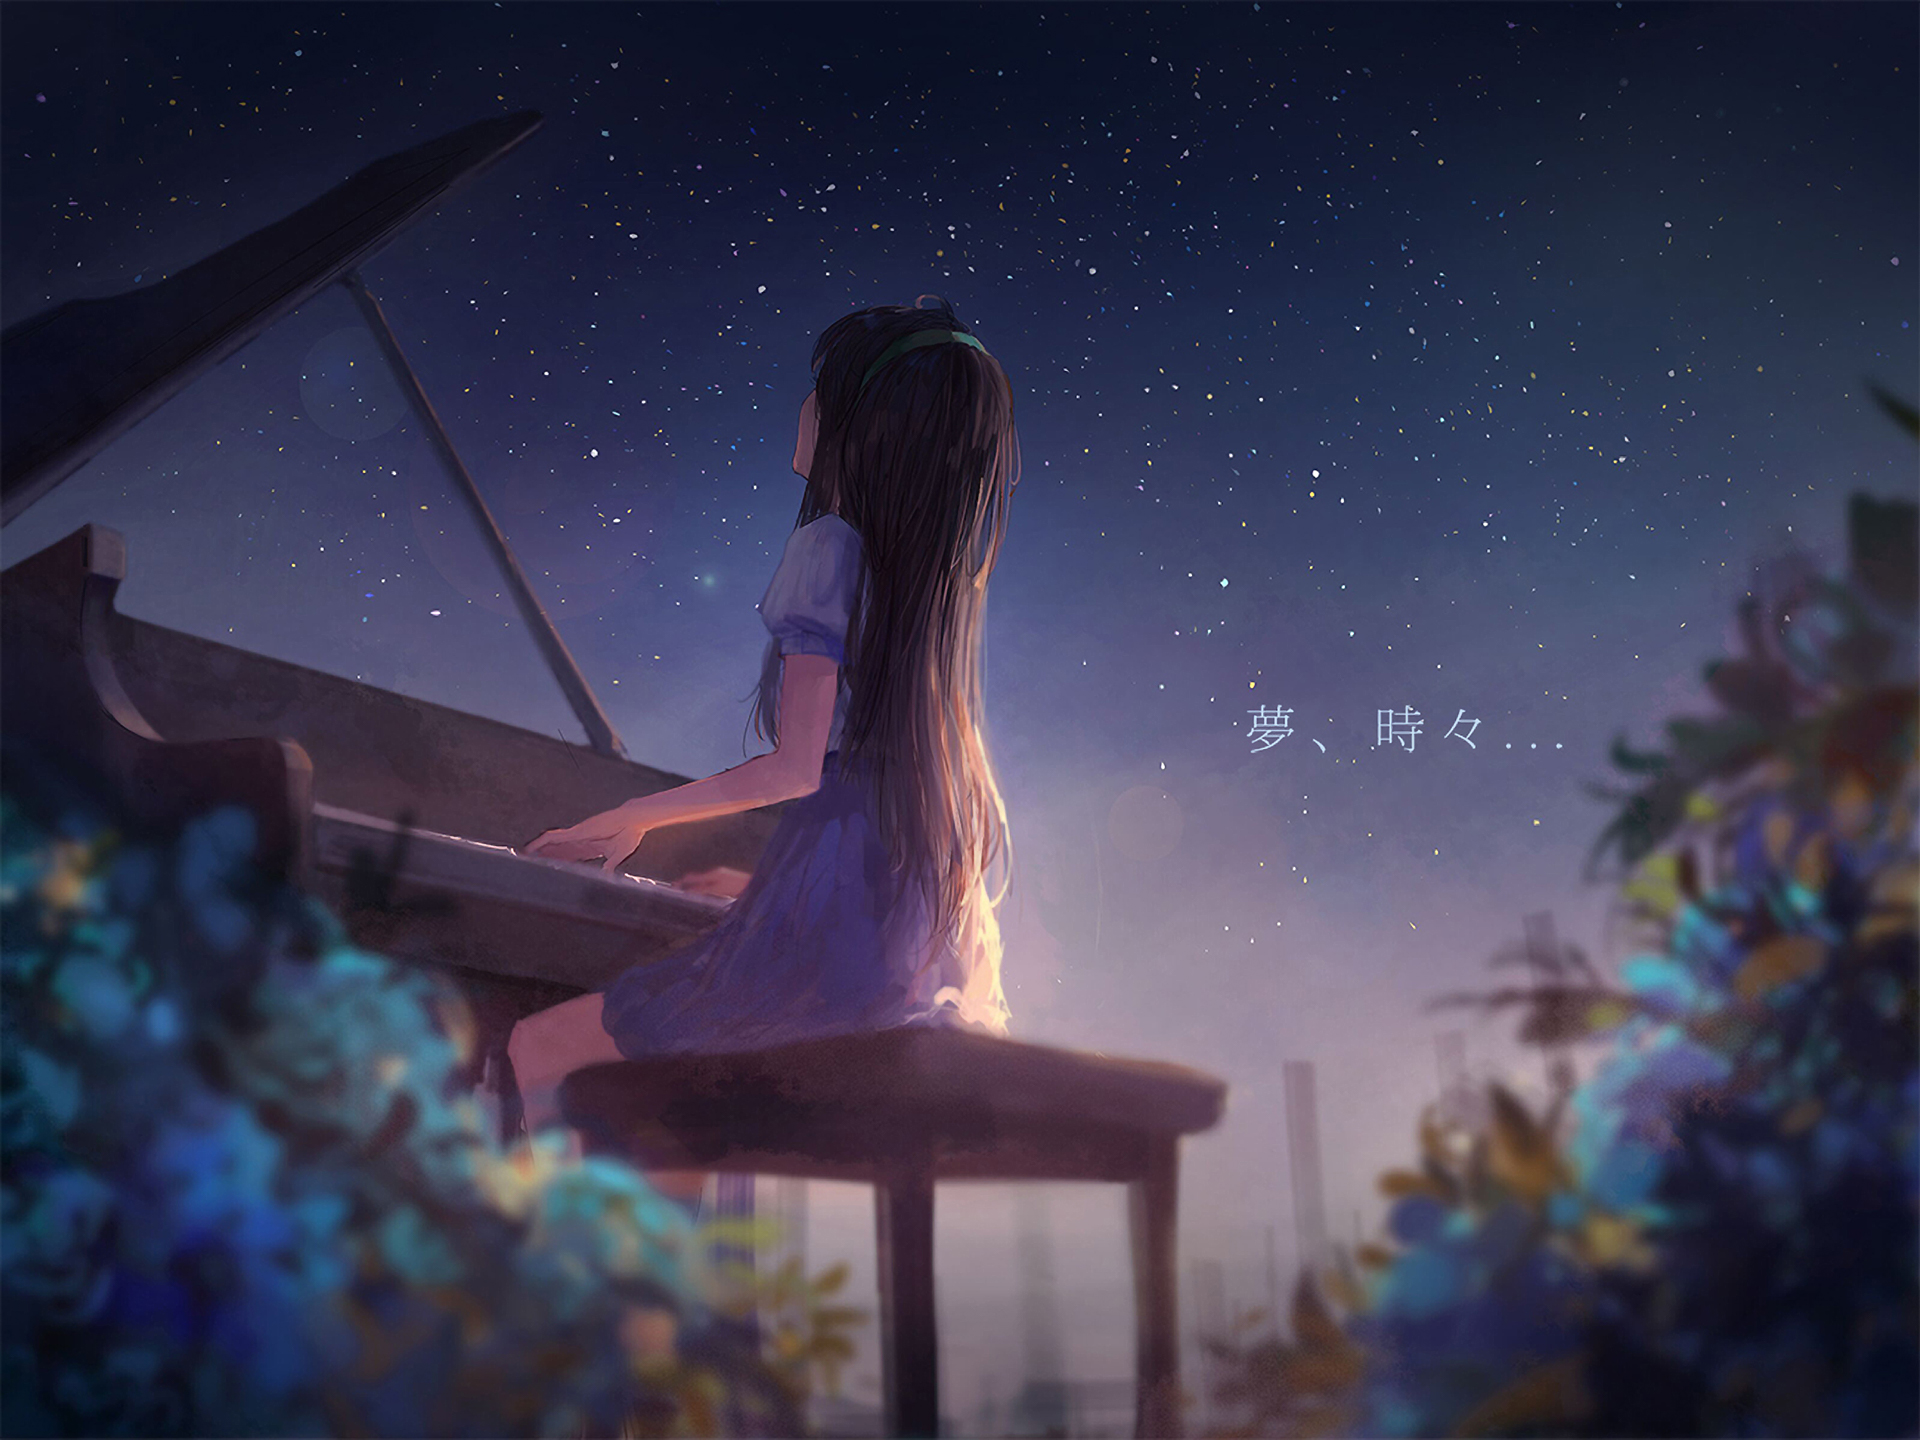 Anime 1920x1440 anime anime girls piano fantasy art digital night alone classical long hair painting drawing stars anime sky